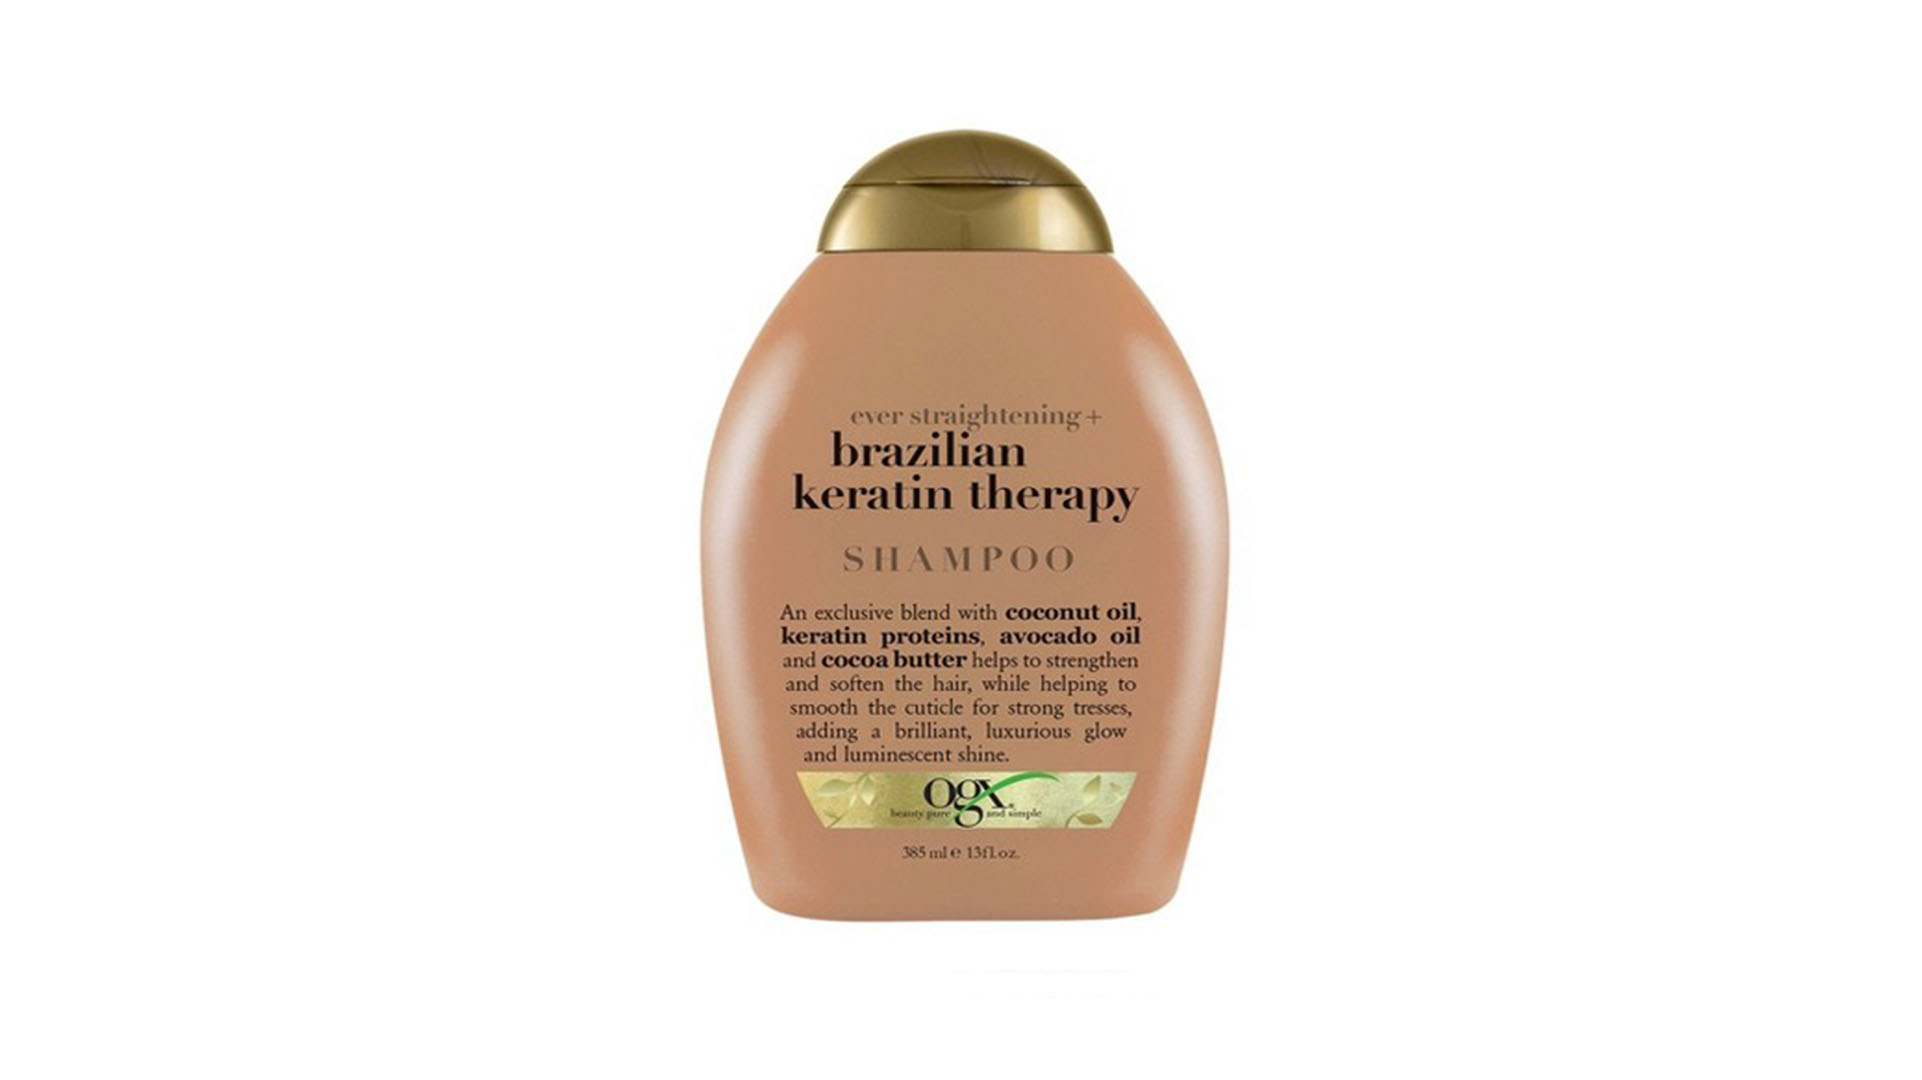 OGX Ever Straightening Plus Brazillian Keratin Therapy Shampoo